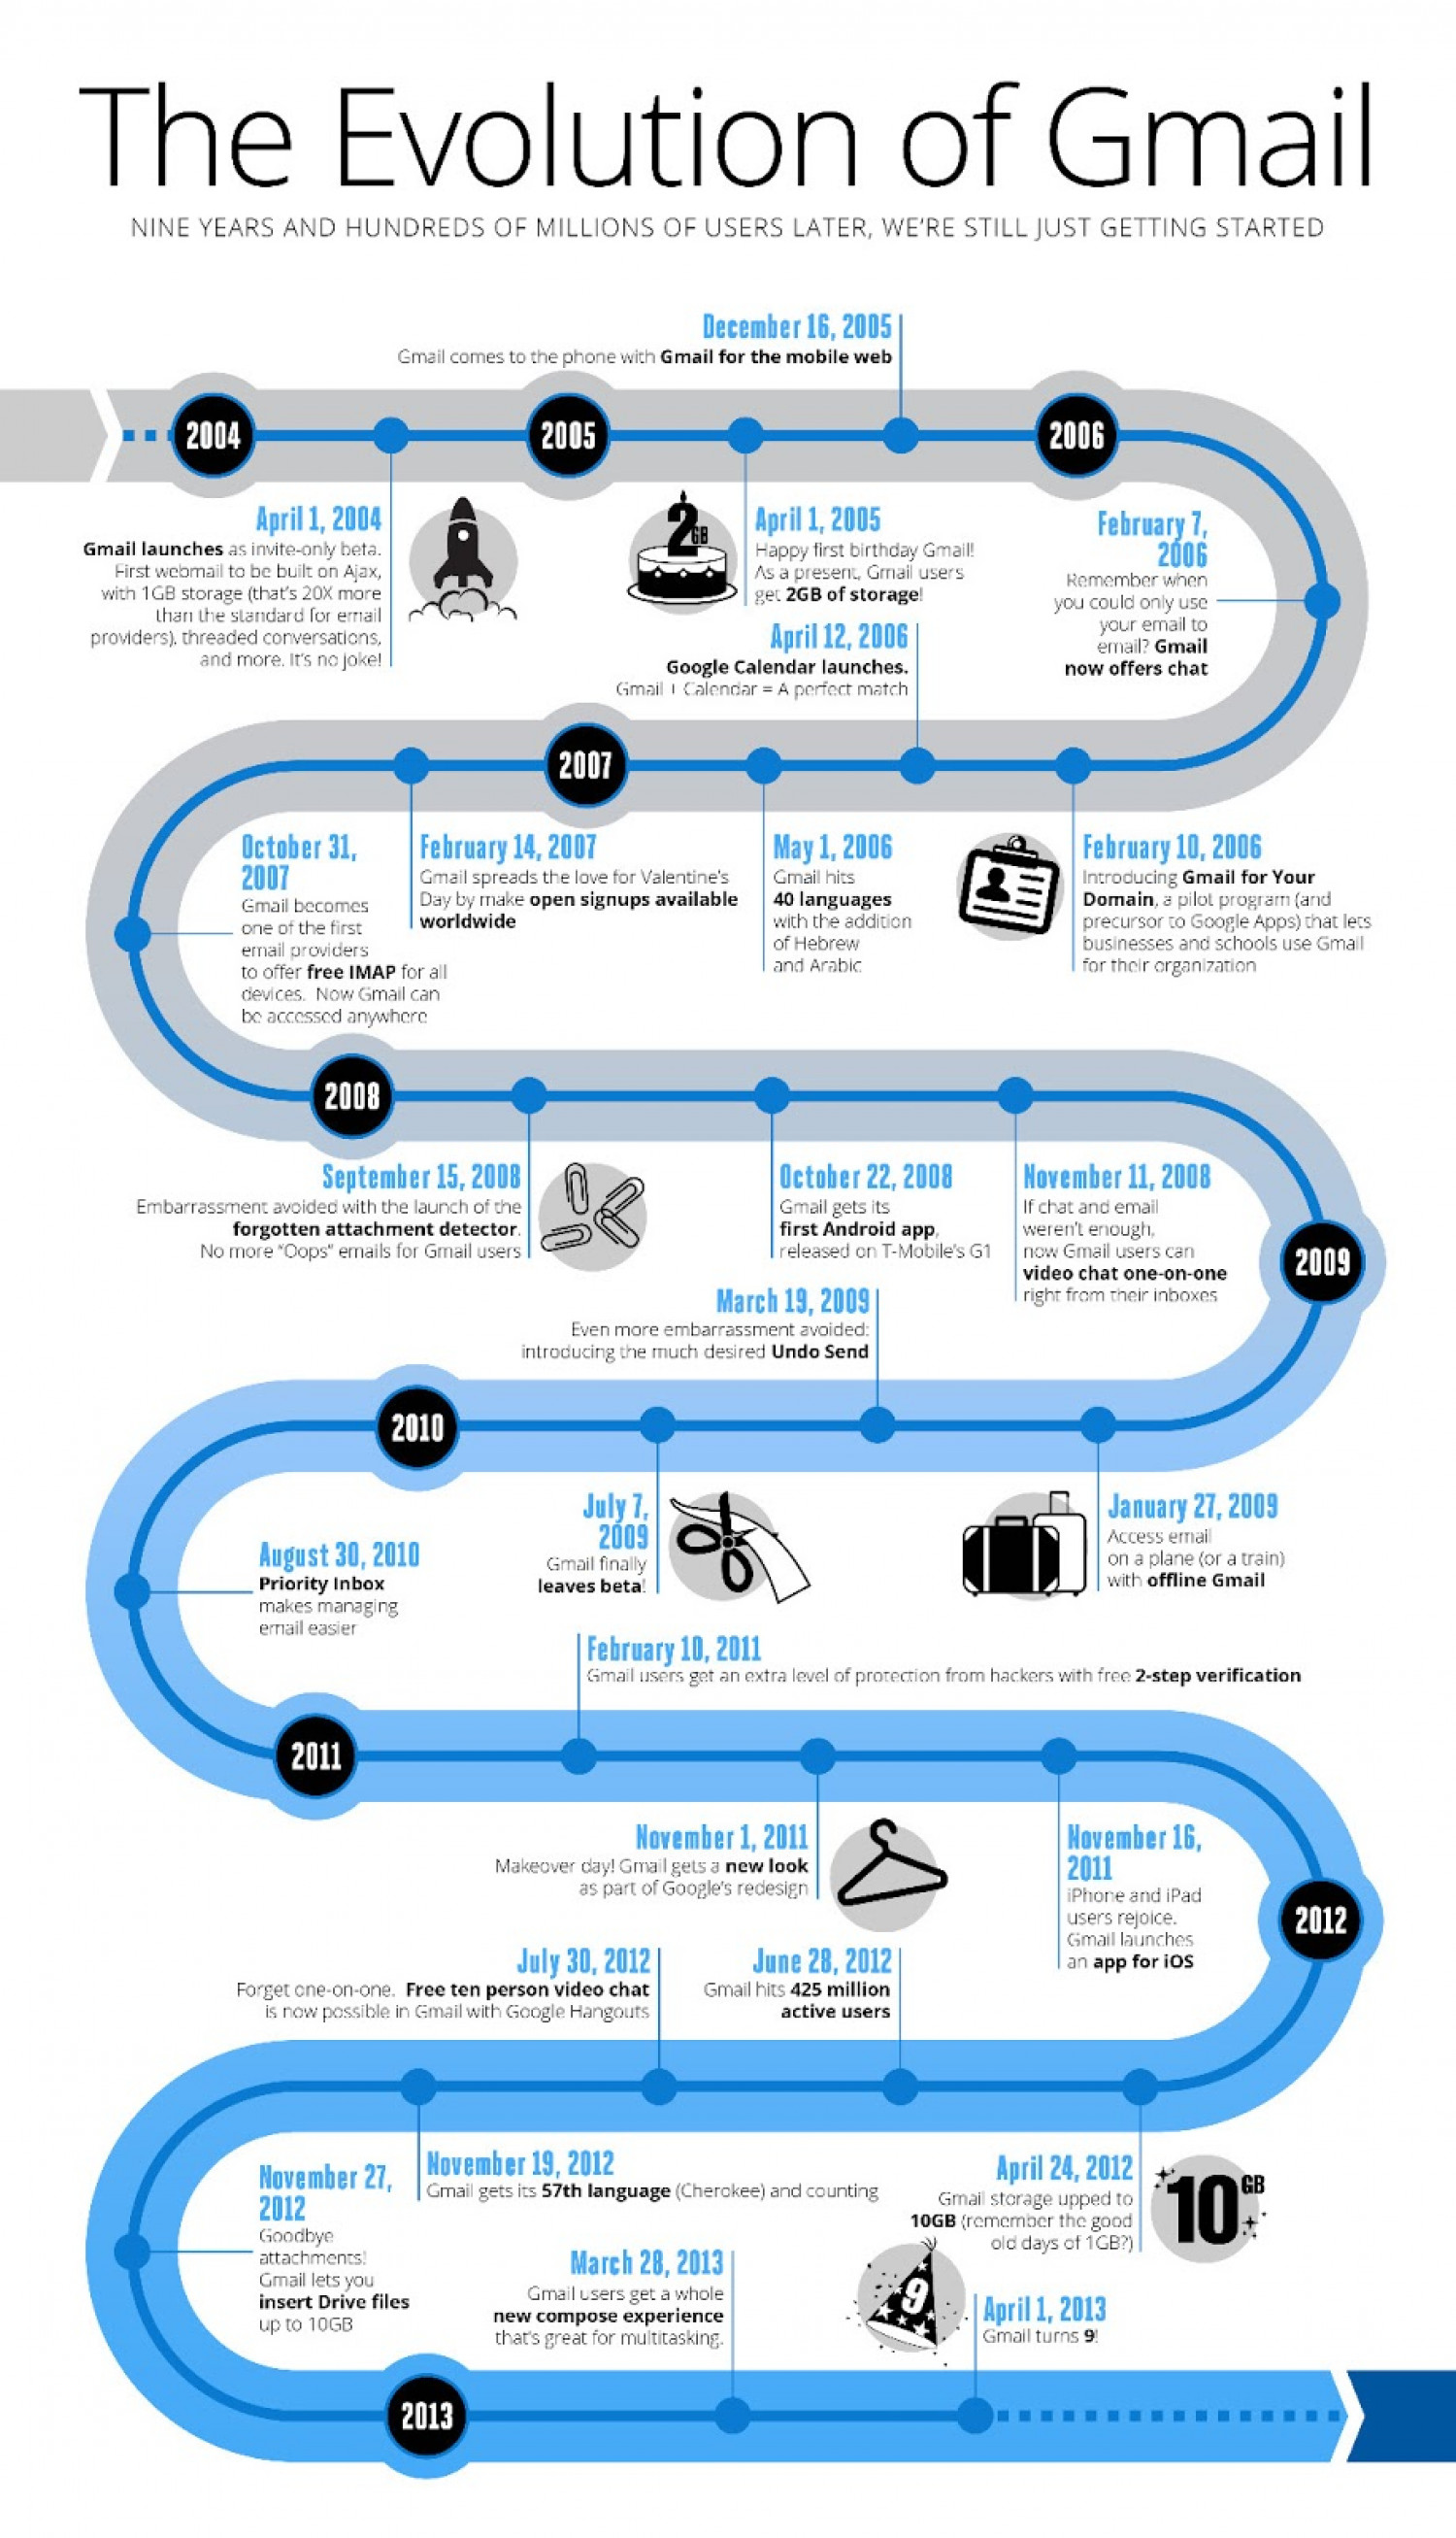 The Evolution of Gmail Infographic